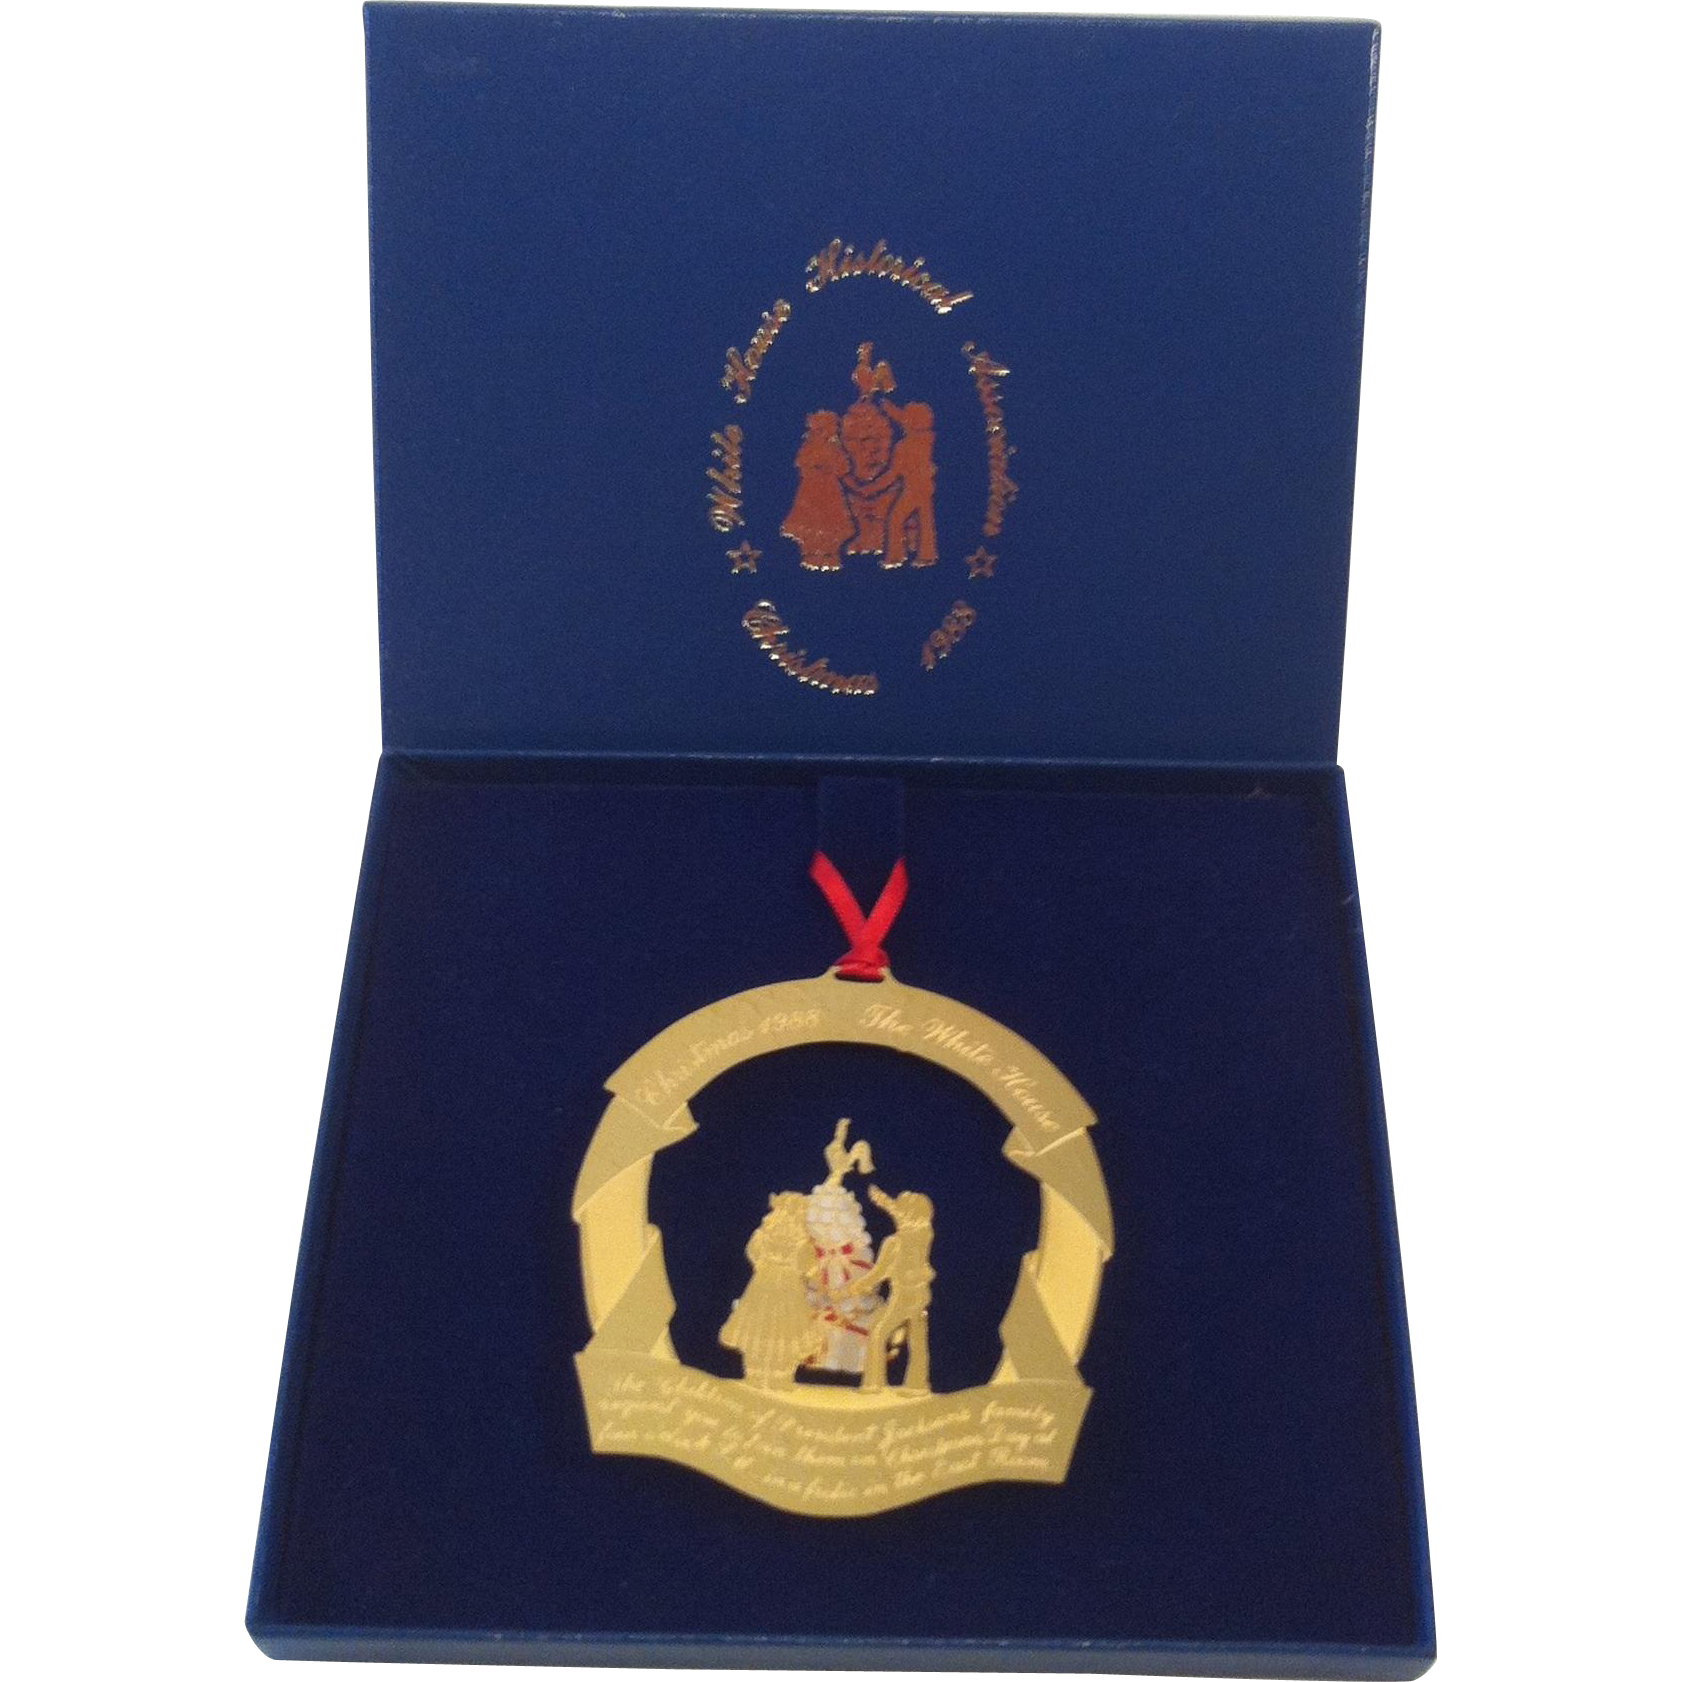 1988 White House Ornament - President Jackson's Children